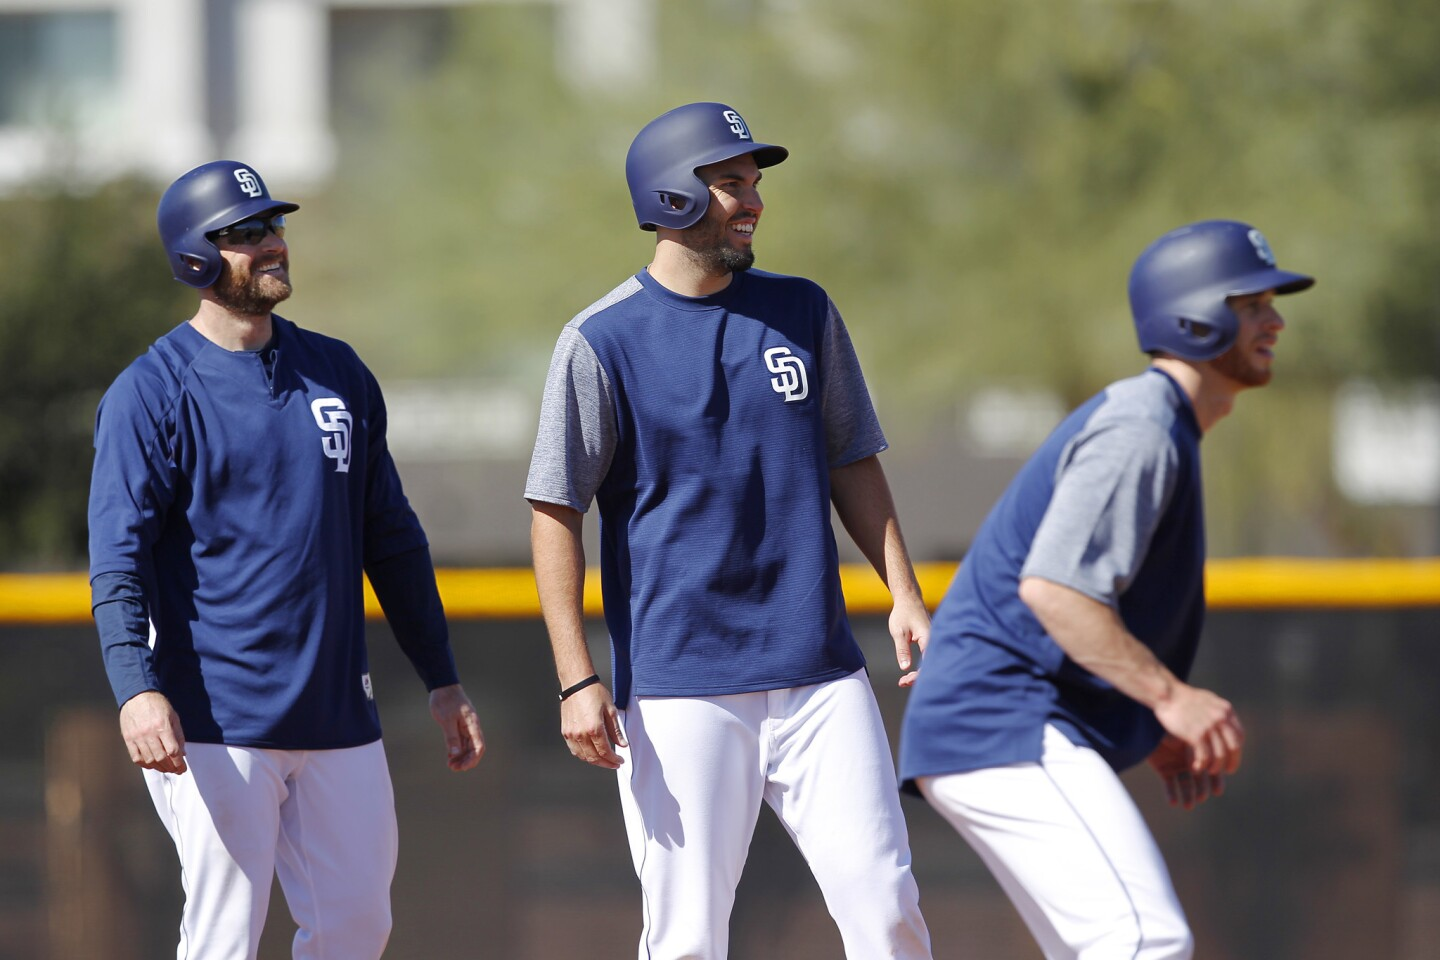 San Diego Padres first baseman Eric Hosmer, center, runs bases with Chase Headley, left, and Cory Spangenberg during a spring training practice in Peoria on Feb. 20, 2018. (Photo by K.C. Alfred/ San Diego Union -Tribune)